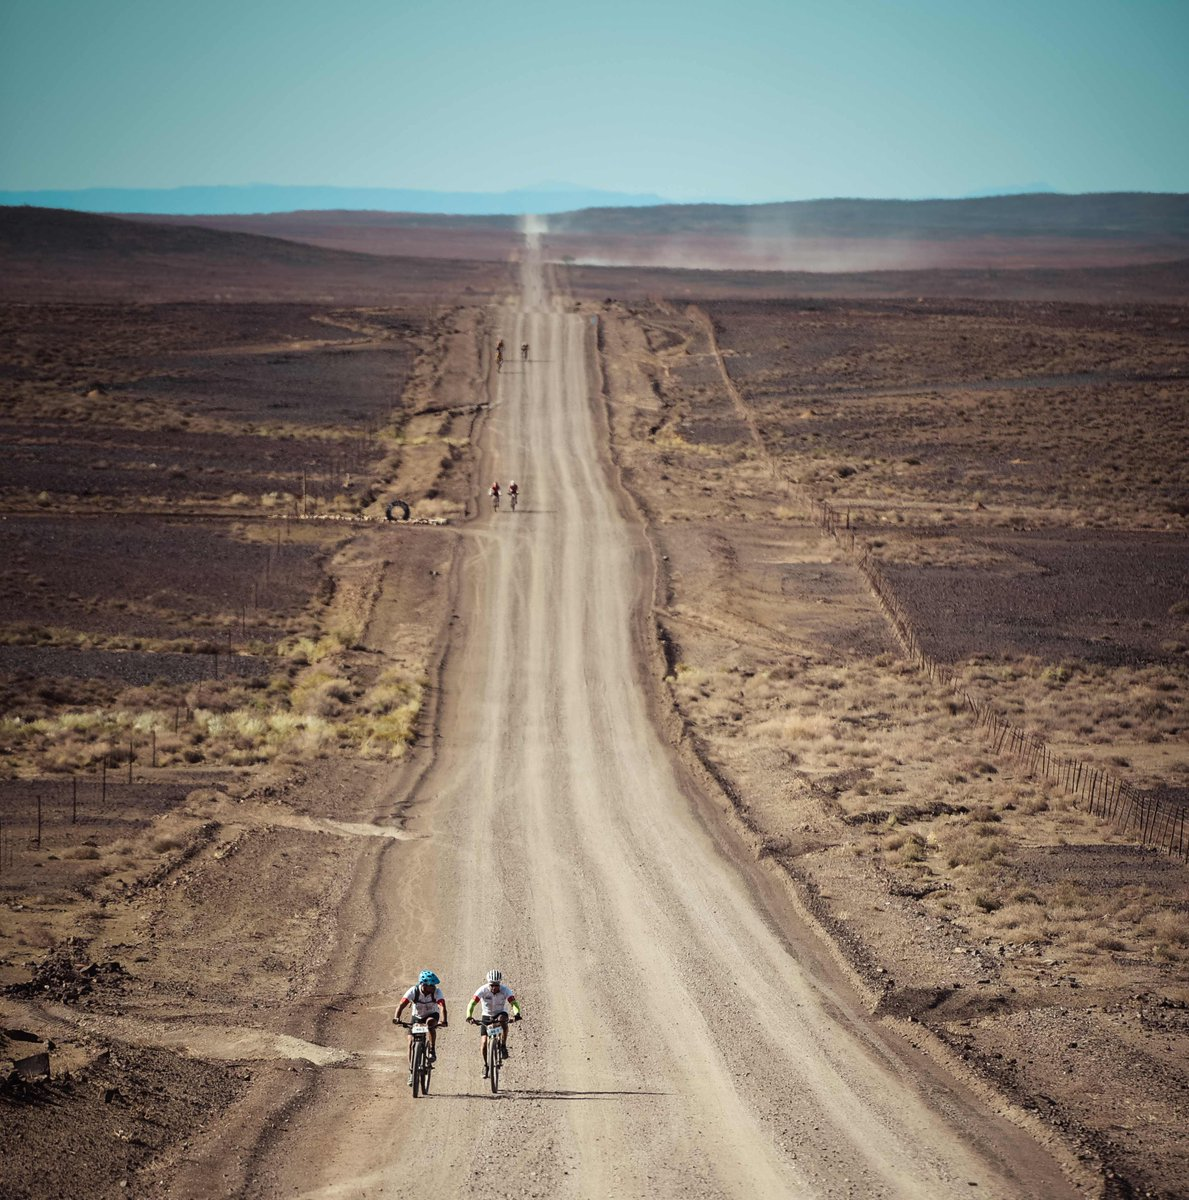 Sponsored: Put your skills to the test on the longest unbroken gravel road in South Africa.  242km | 20 February 2021 | Enter at https://t.co/oKQSgr4O1n https://t.co/TmiIoNt8N9